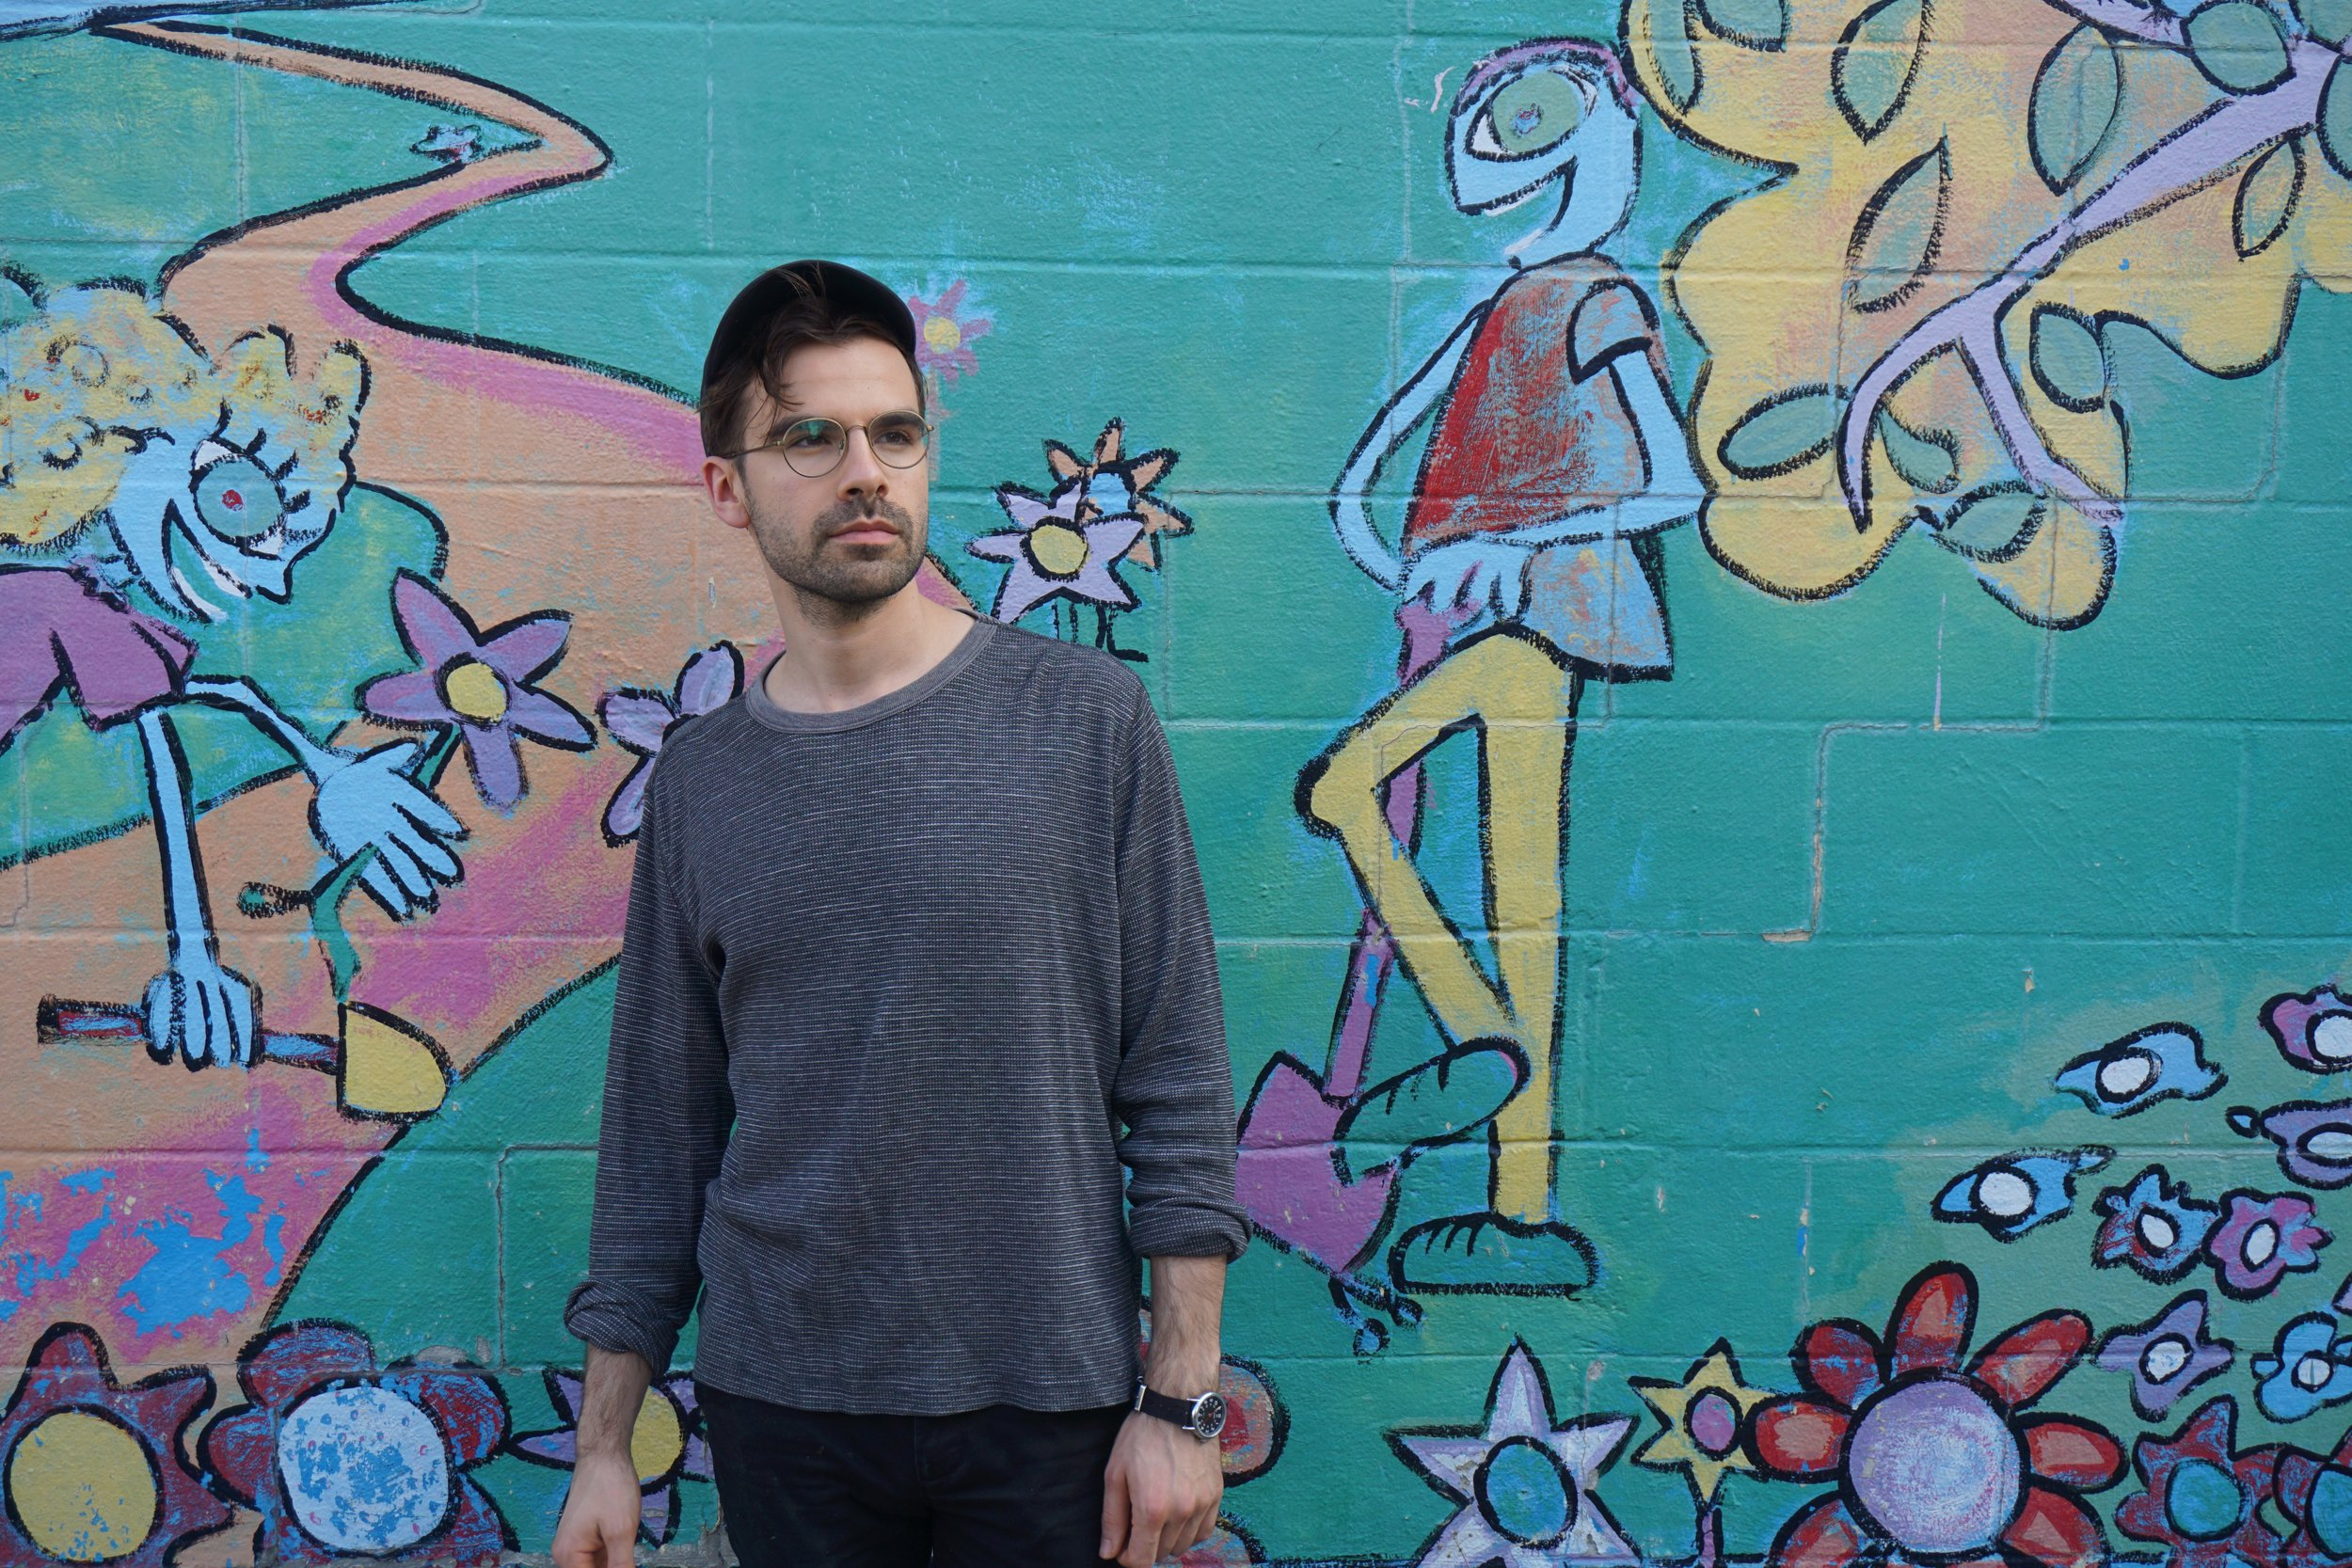 Joseph Barrios   -  [On making music]  I think its important to make music unbounded and to really write for yourself before you consider what an audience is going to perceive what your music is really going to be. I'm at a really nice point right now because I'm a super new artist, so I haven't really defined what my sound is yet, so it allows me to really try out a lot of new sounds.